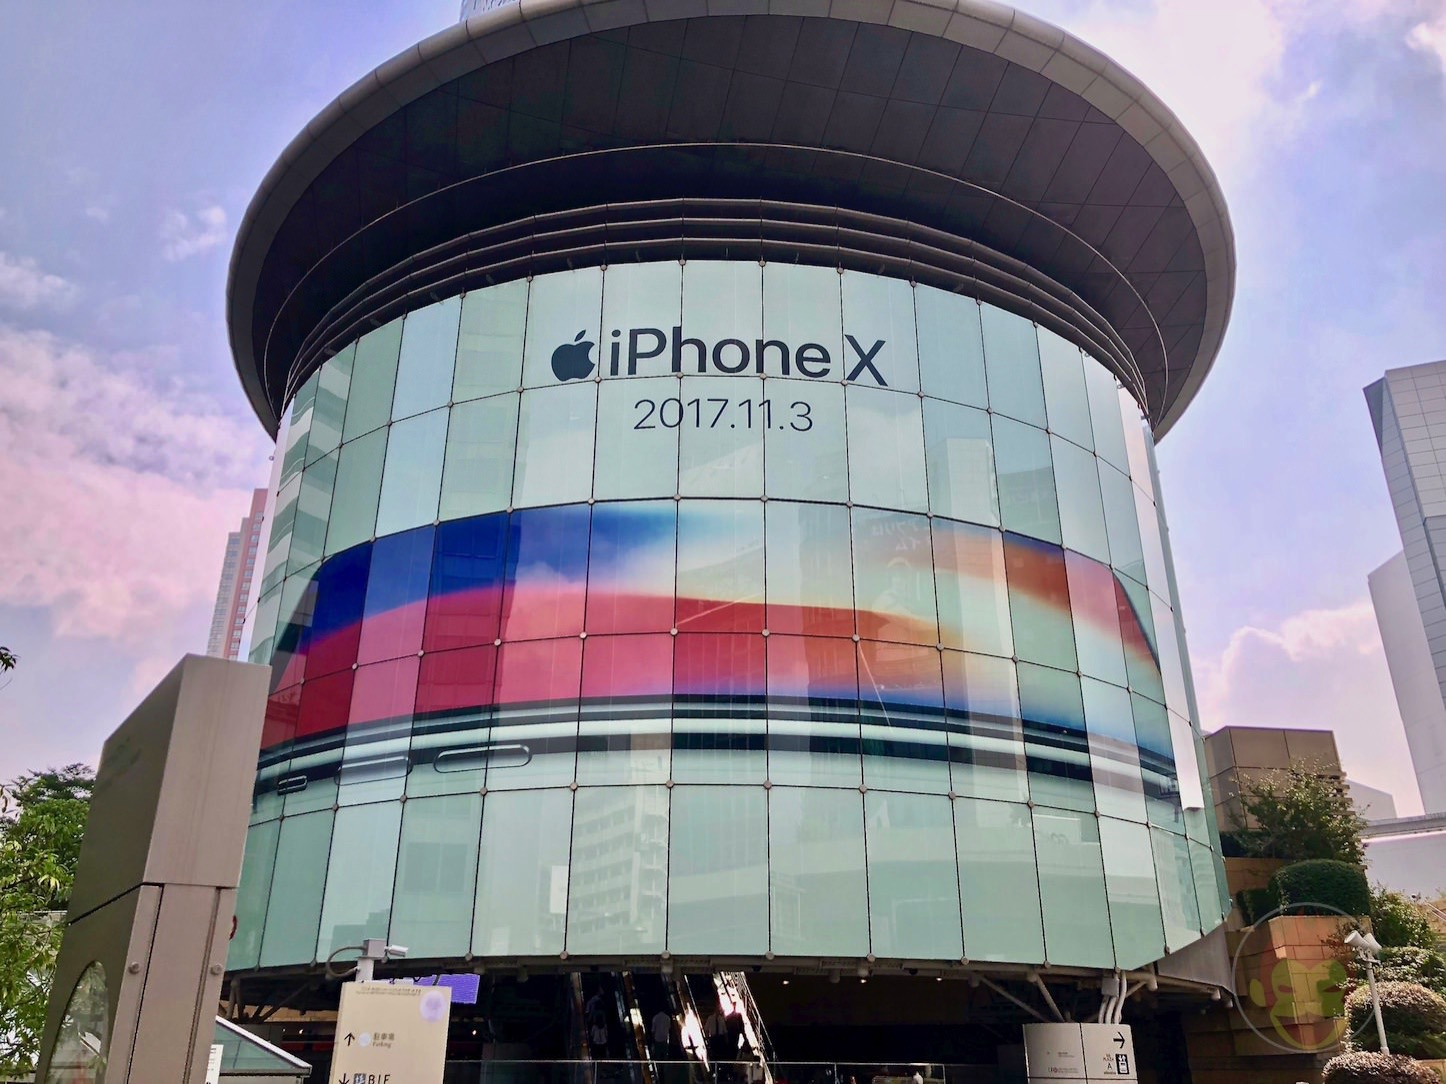 IPhoneX Coming Soon at Roppongi